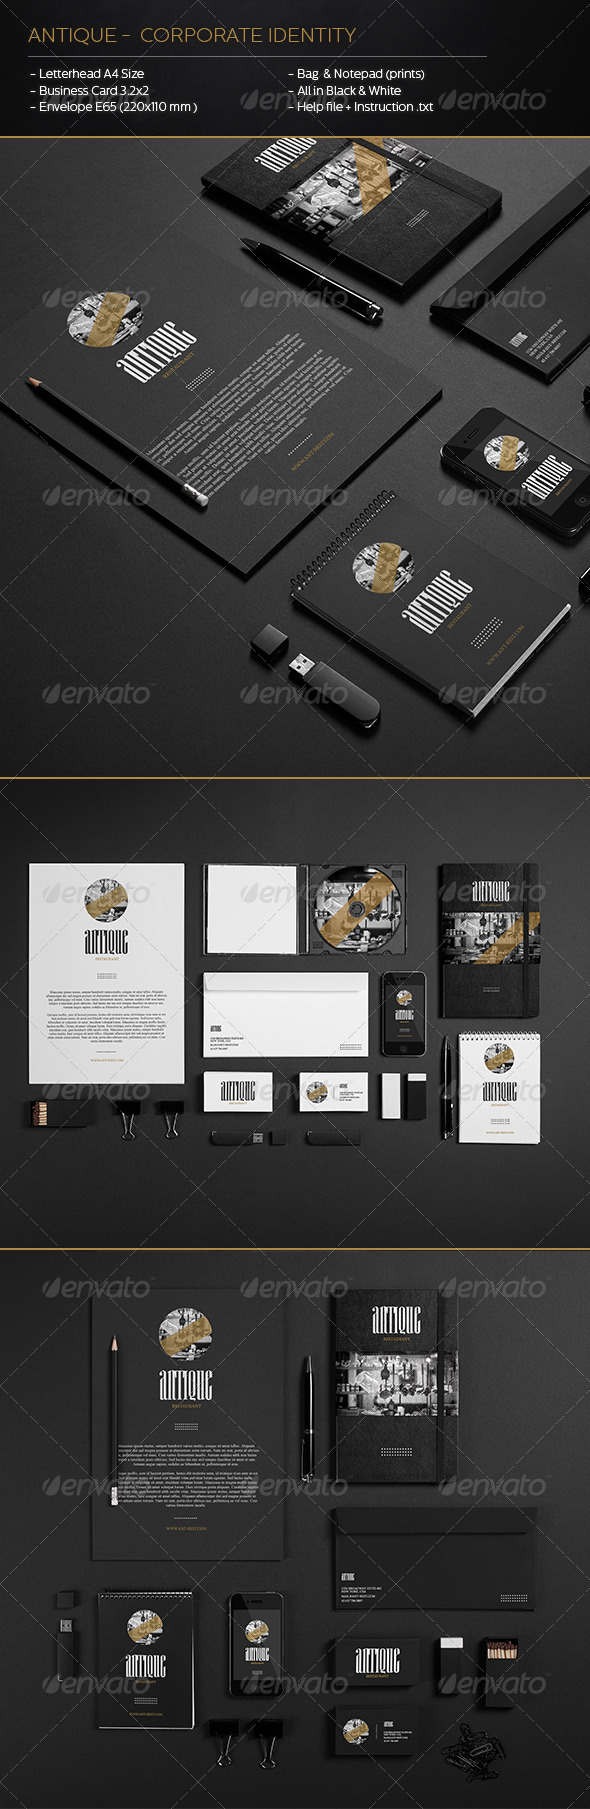 Antique Corporate Identity